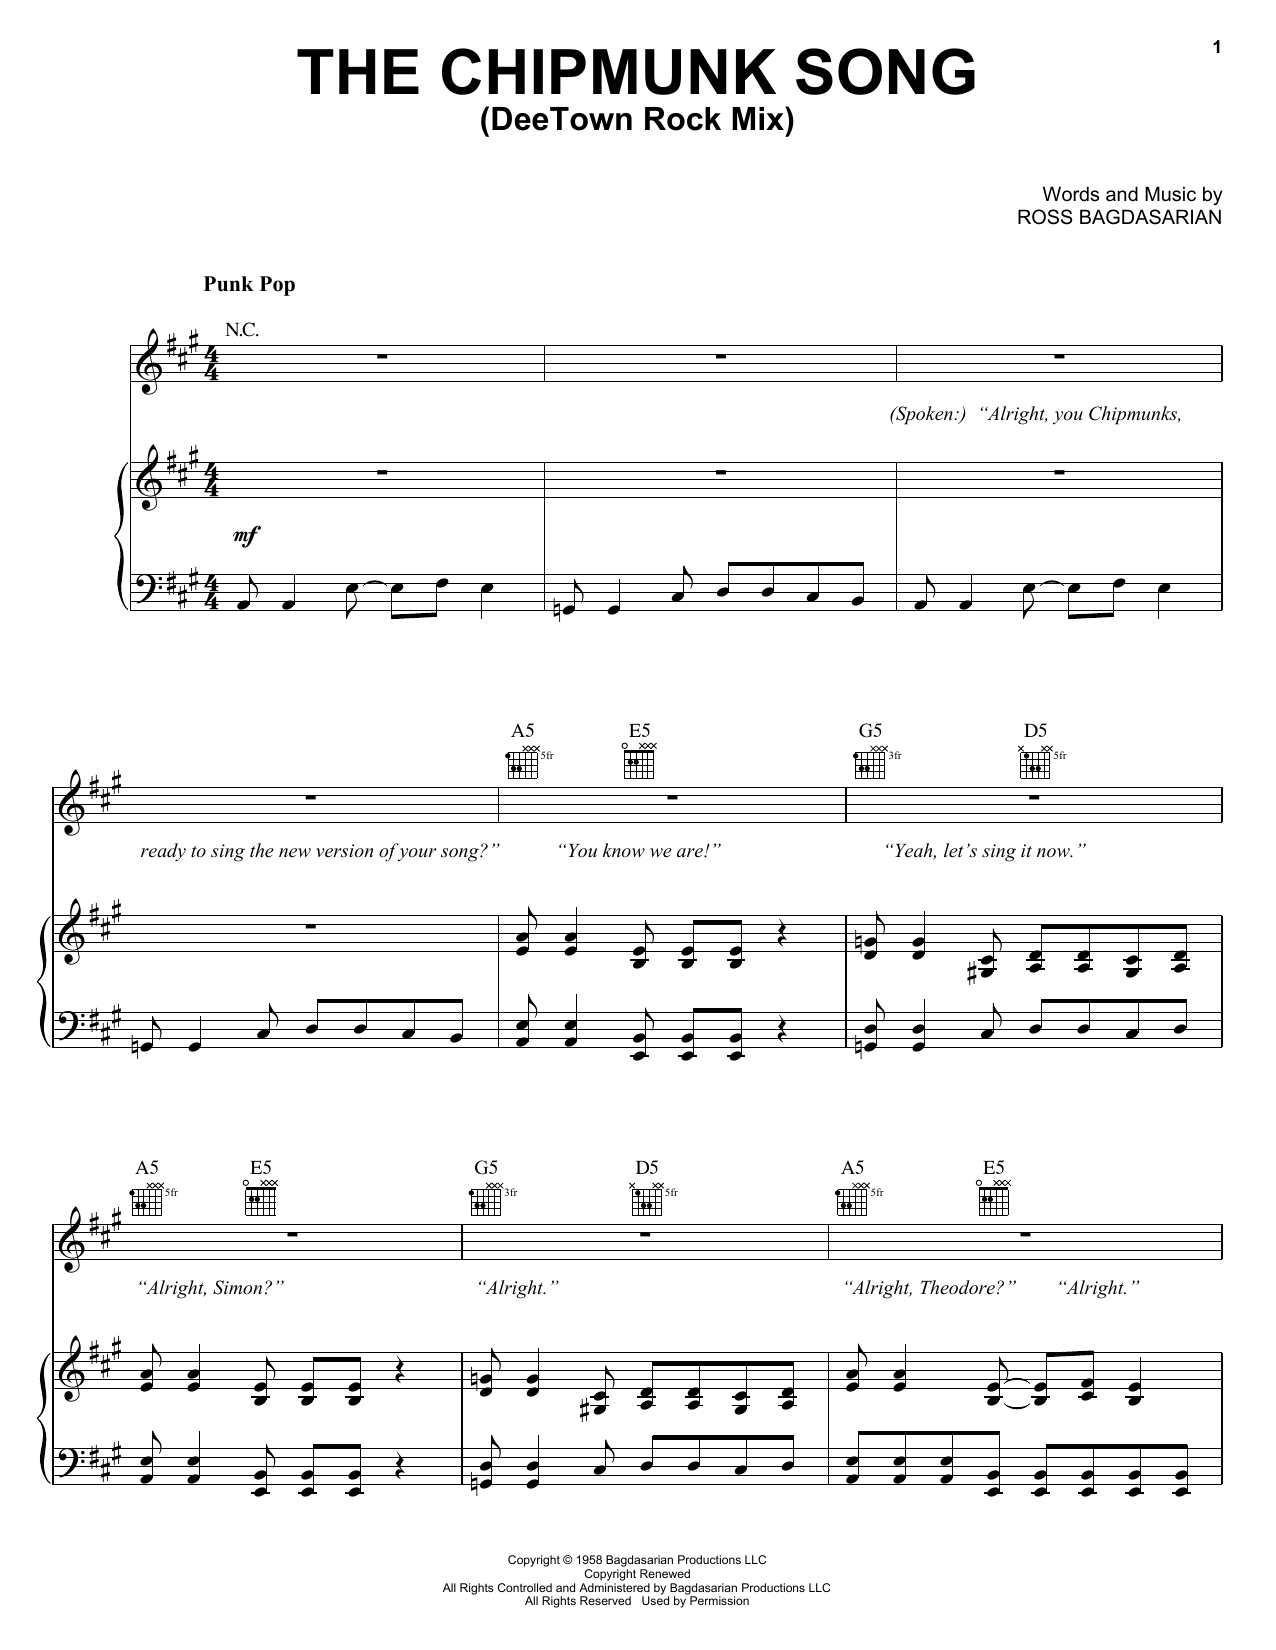 Alvin And The Chipmunks The Chipmunk Song (DeeTown Rock Mix) sheet music notes and chords. Download Printable PDF.